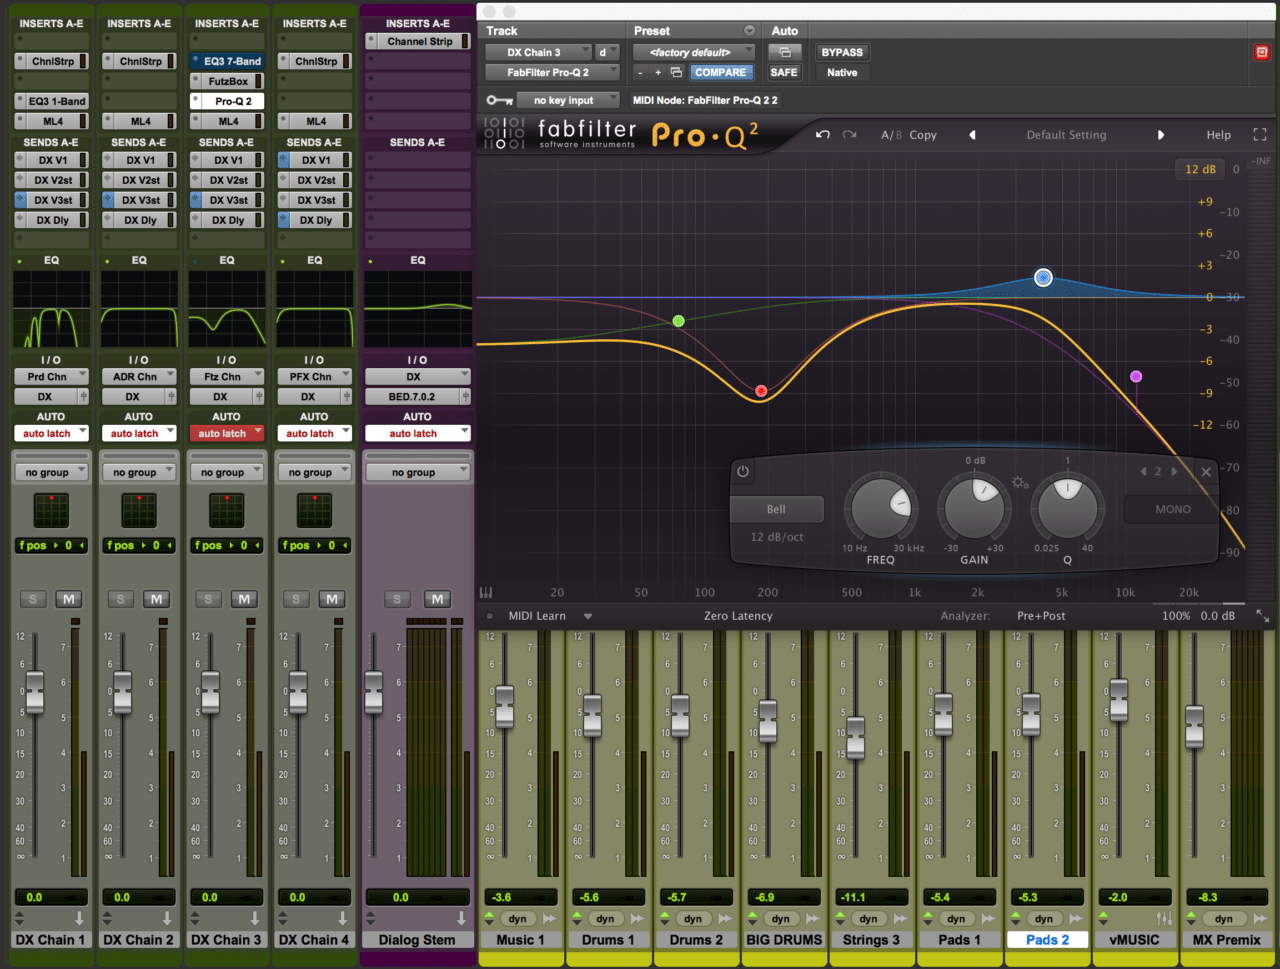 Get a Better View of Your Mix with Pro Tools 2018